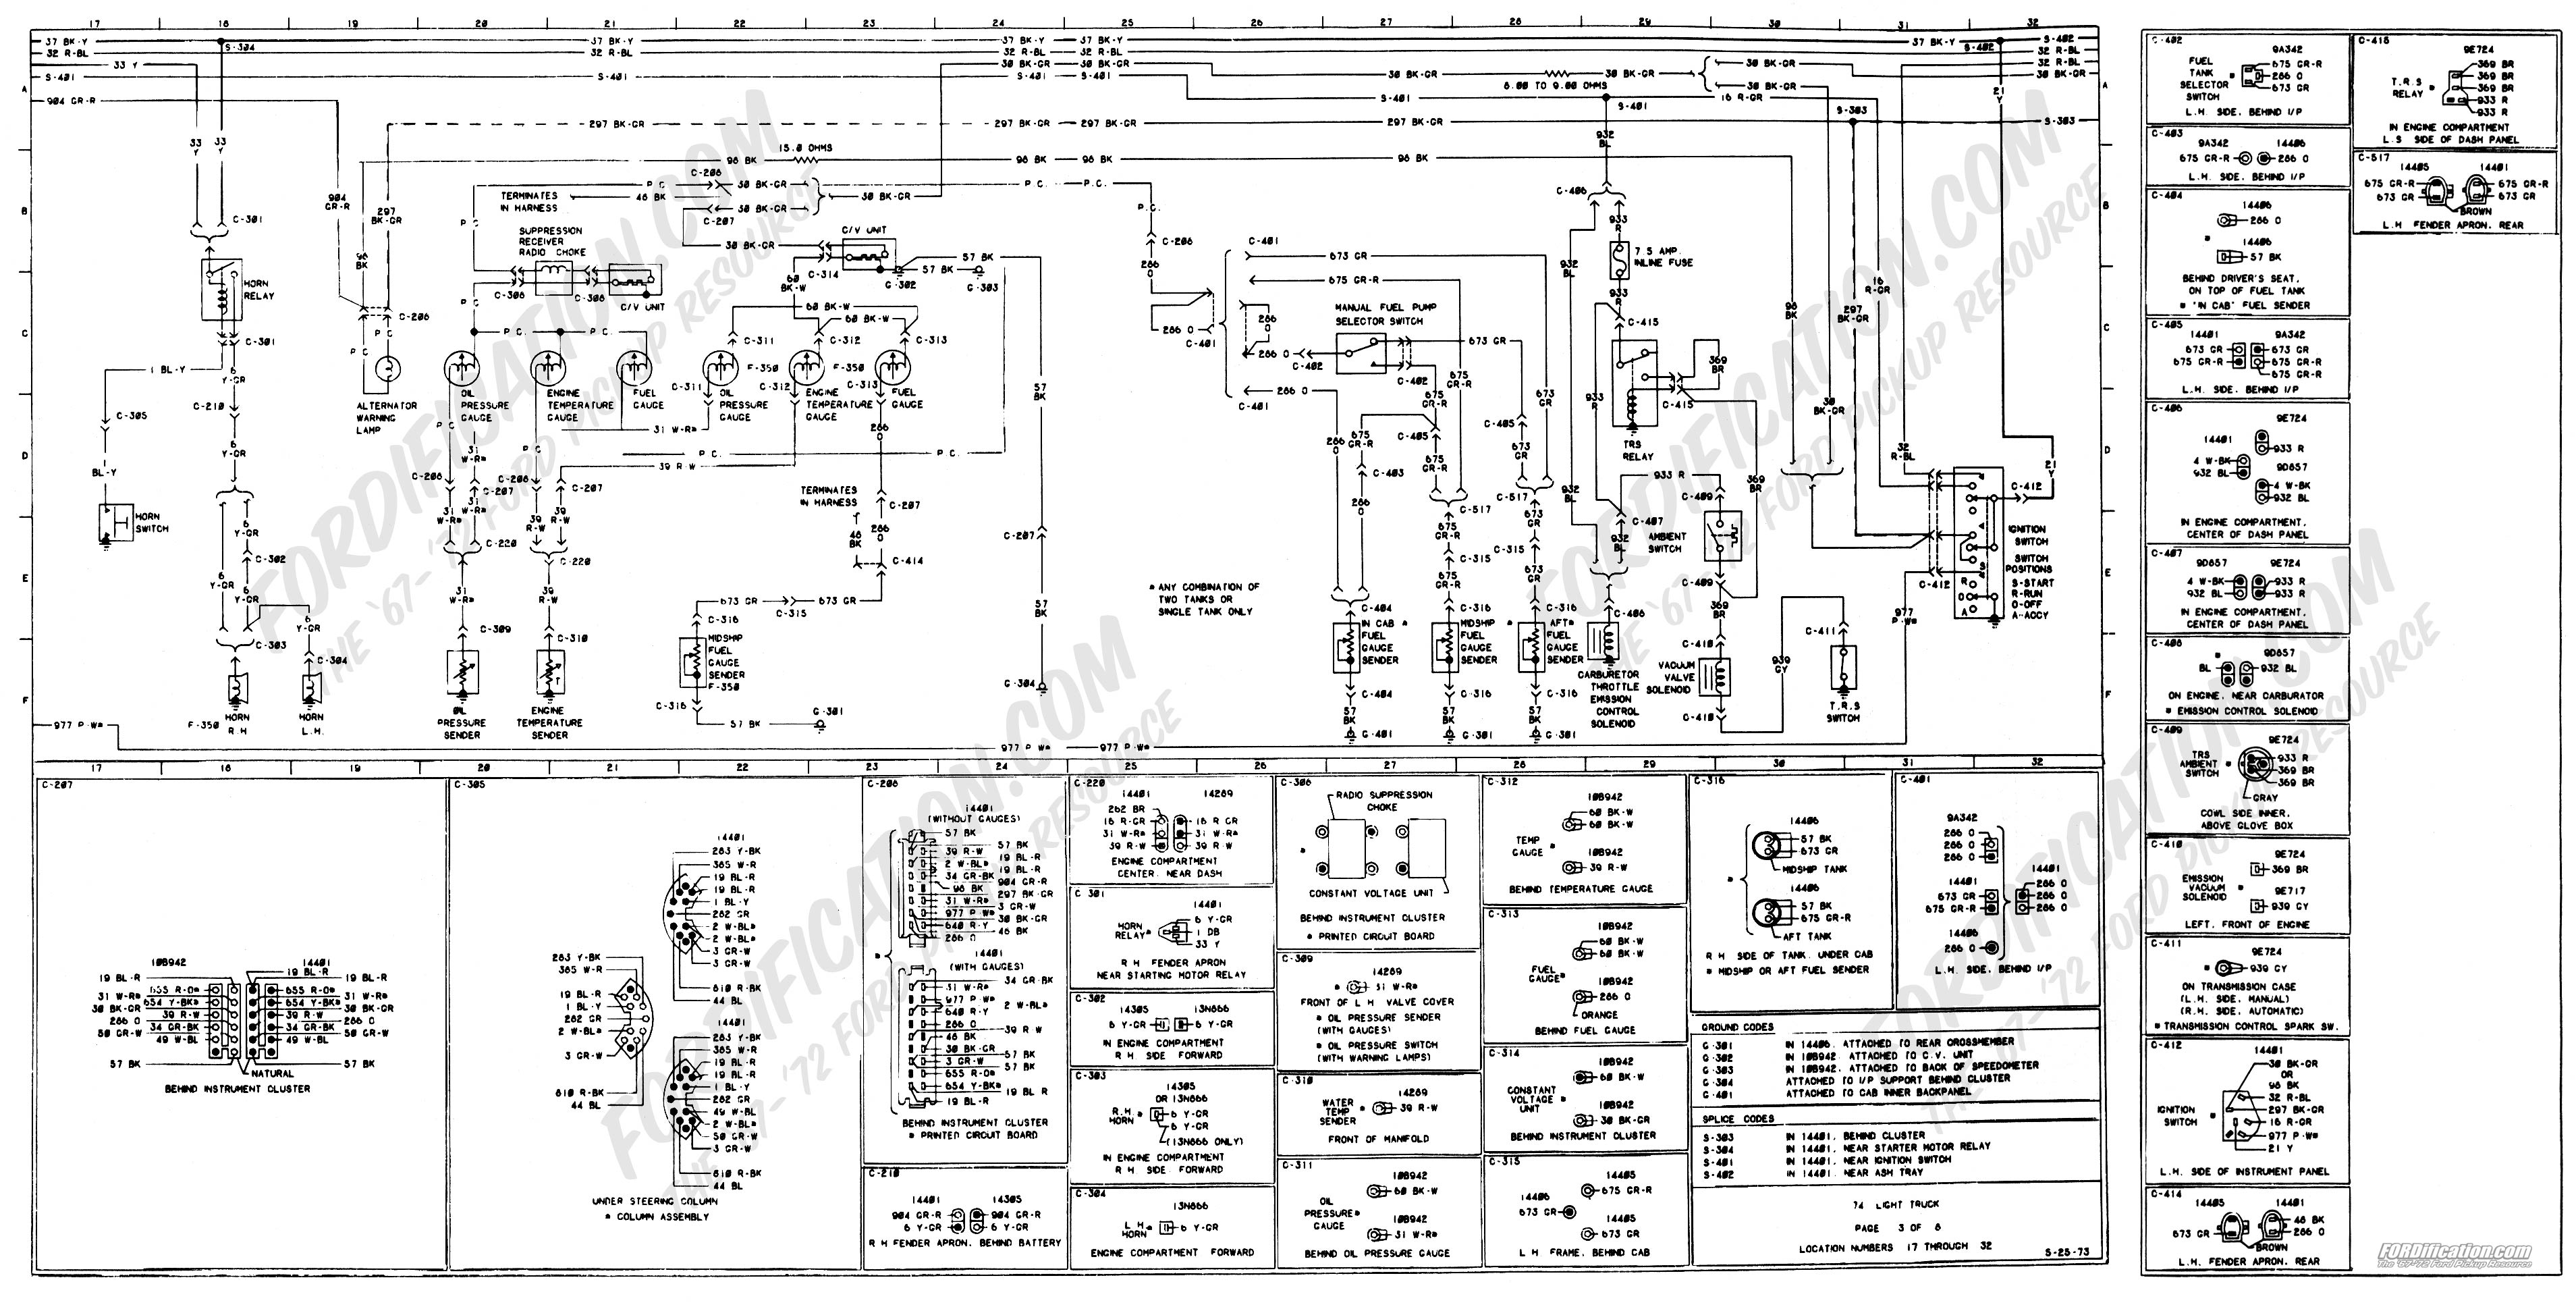 1973 1979 Ford Truck Wiring Diagrams Schematics Ignition On Diagram Basic Car Simple Race Page 03